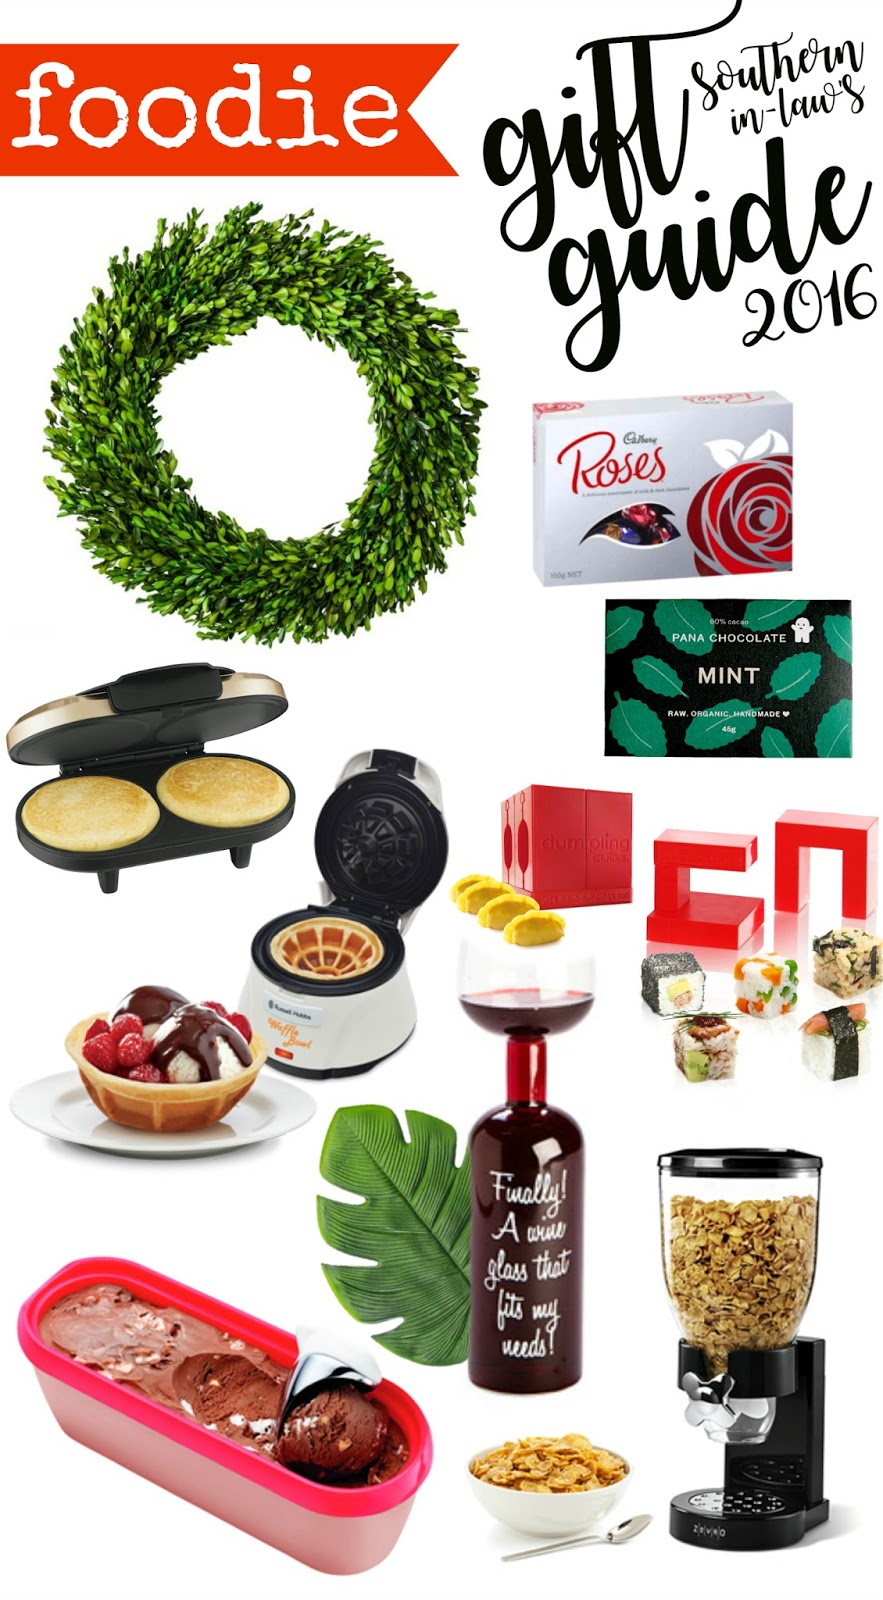 The Best Gift Ideas for Foodies 2016 - Food Lovers Christmas Gift Guide, Gift Ideas for Cooking, Kitchen, Baking, Hostess Gifts, Birthday, Anniversary